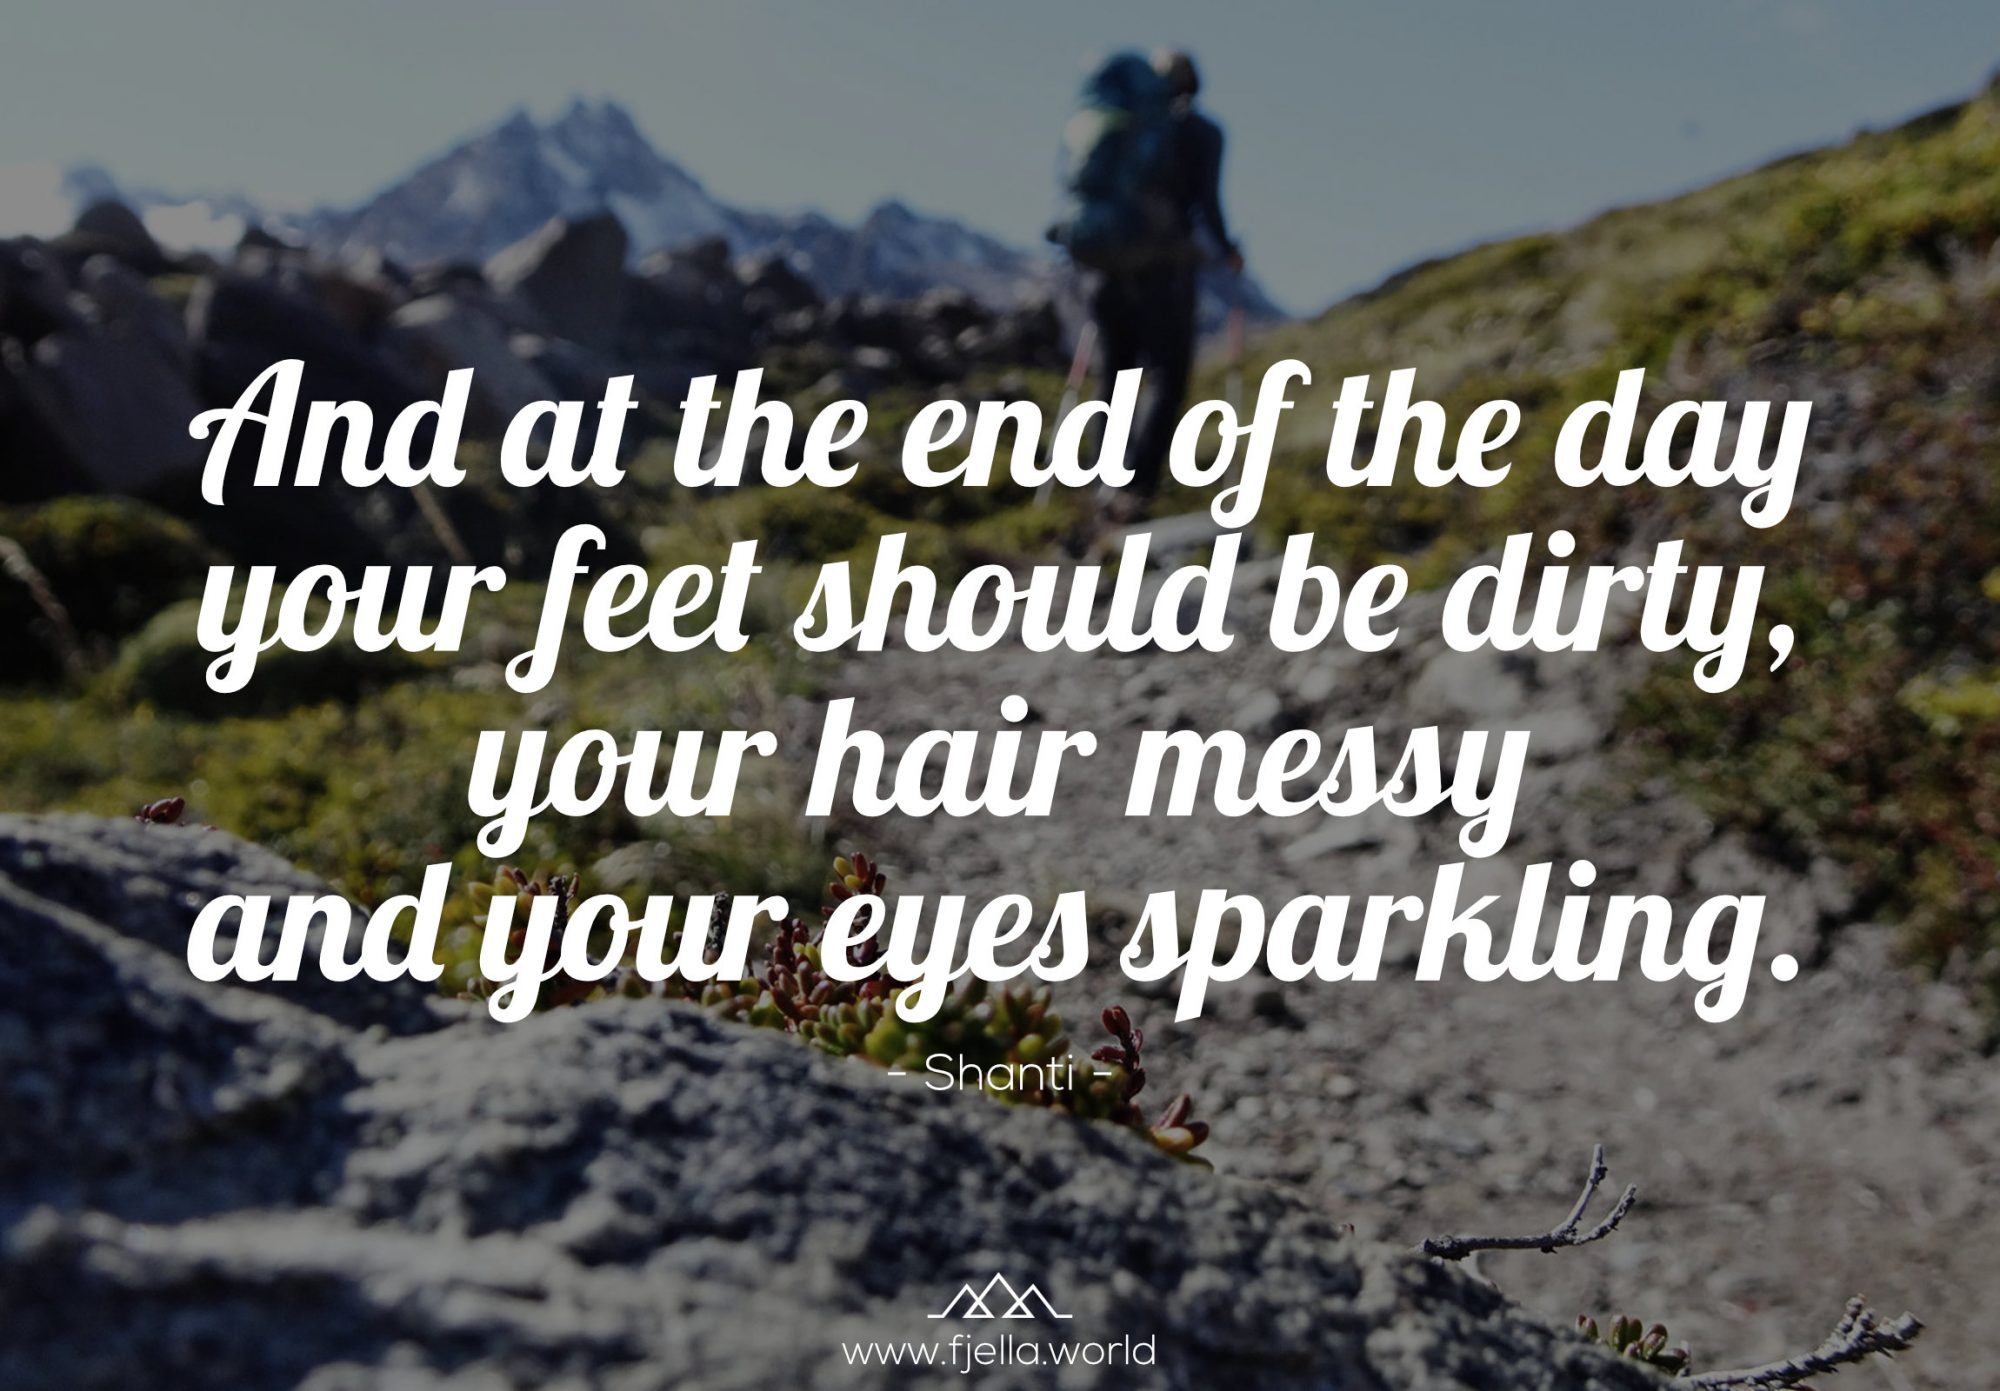 And at the end of the day your feet should be dirty, your hair messy and your eyes sparkling. Wandersprüche, Sprüche Wandern, Zitate Wandern, Wanderzitate, Bergzitate, Motivation Zitate, Inspiration Zitate, Motivation